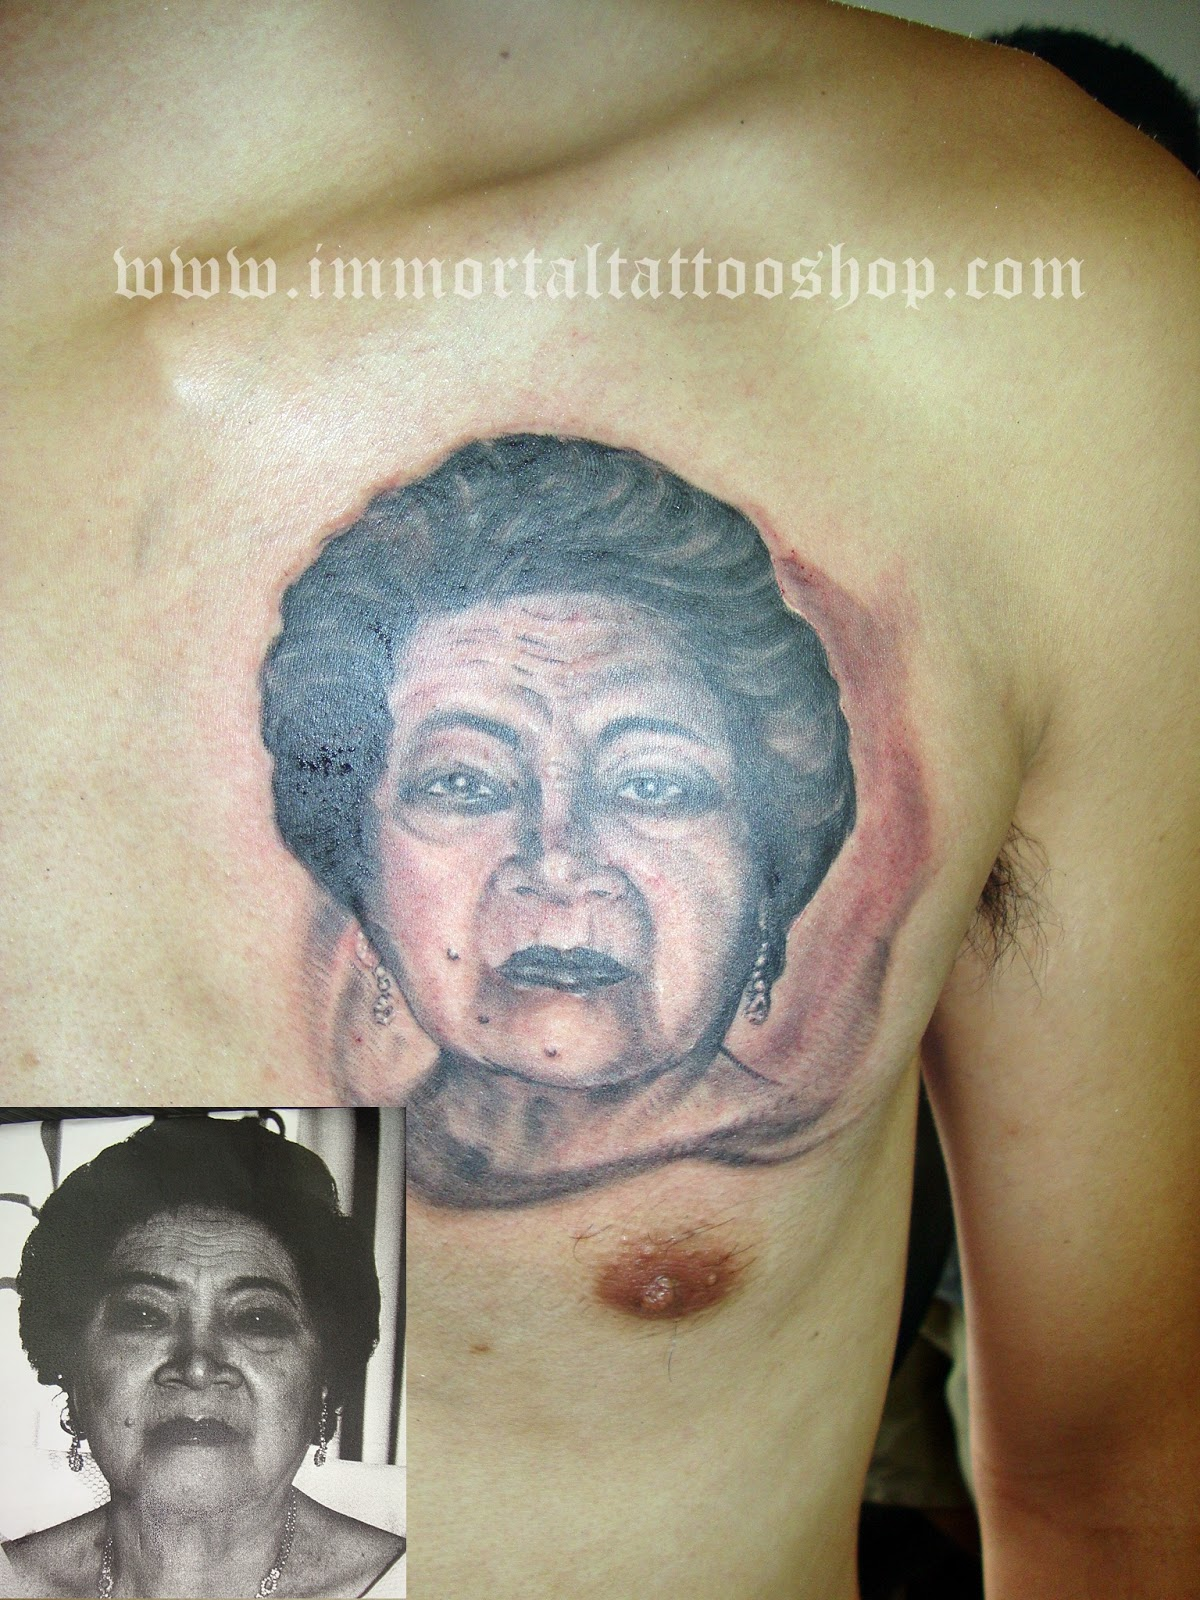 Immortal tattoo manila philippines by frank ibanez jr for Memory tattoo for grandma